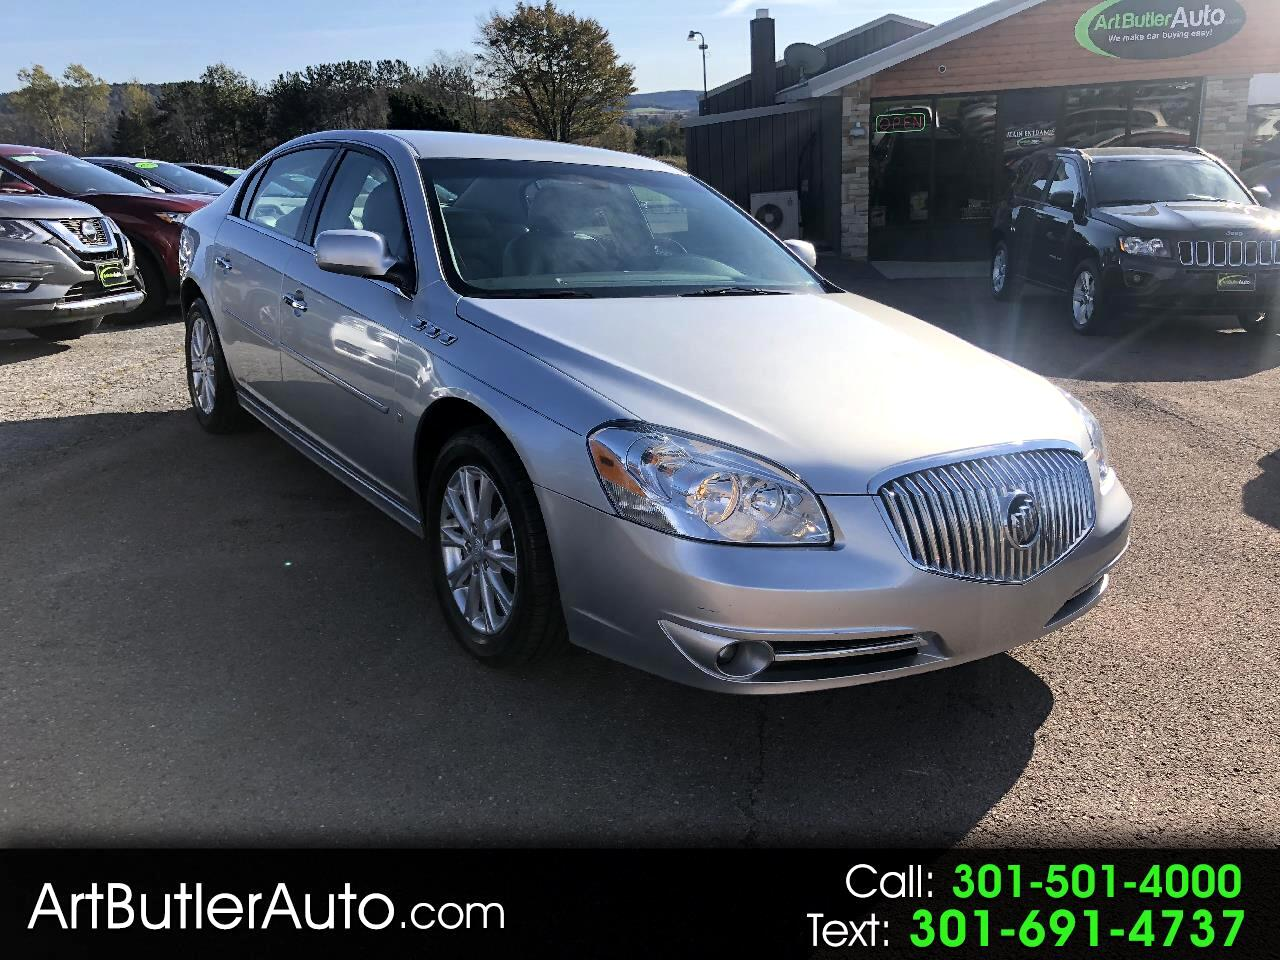 2010 Buick Lucerne 4dr Sdn CXL